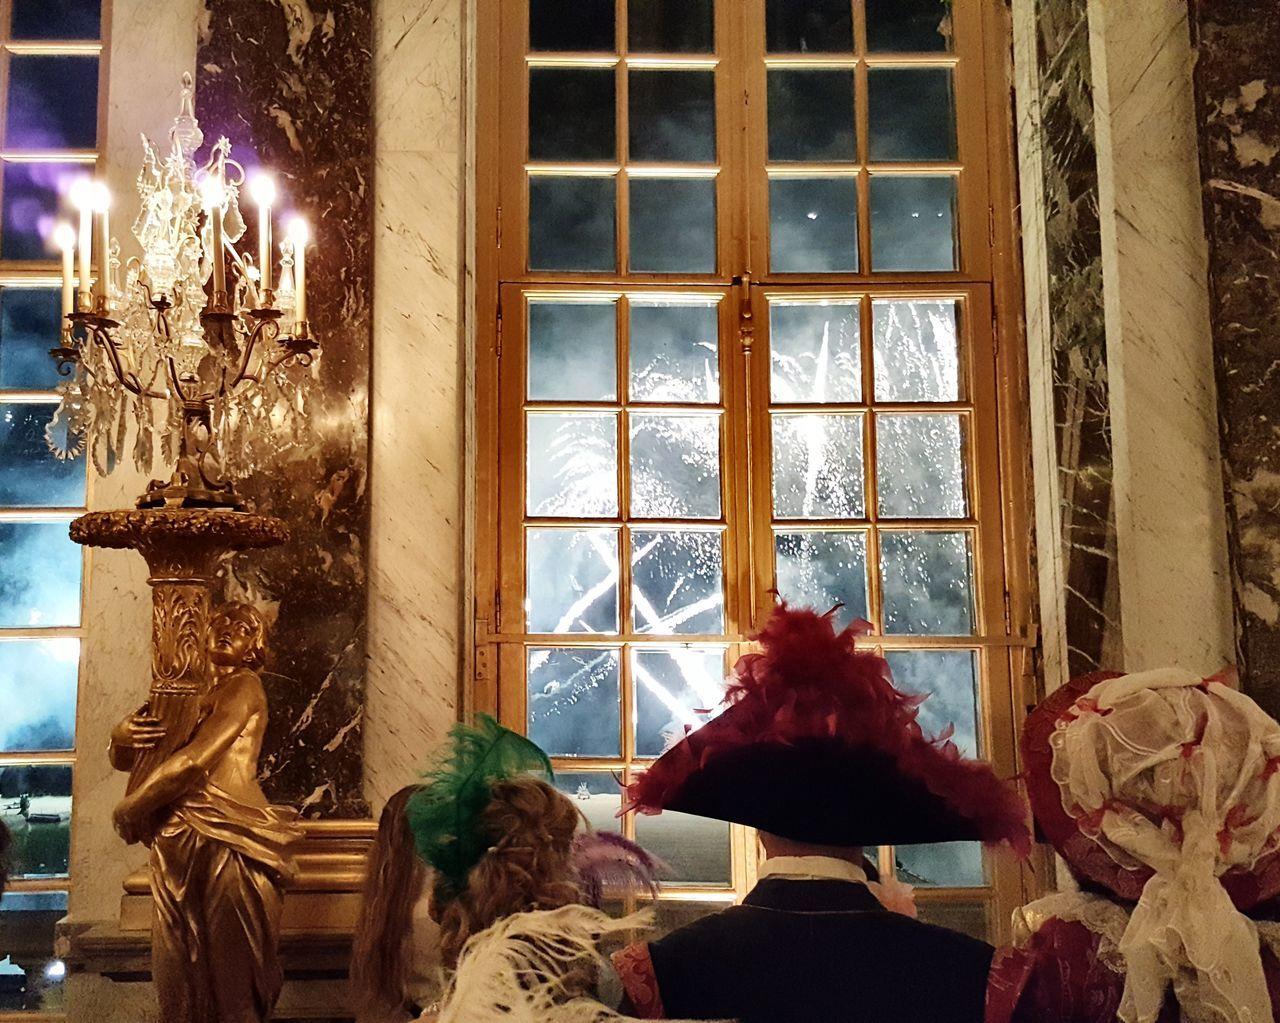 Window Firework Display Firework Fireworks Fireworks Photography Versailles At Night Luxury Rococo 18th Century Style The Hall Of Mirrors Hall Of Mirrors Castle Fêtes Galantes Party Rococo Illuminated Indoors